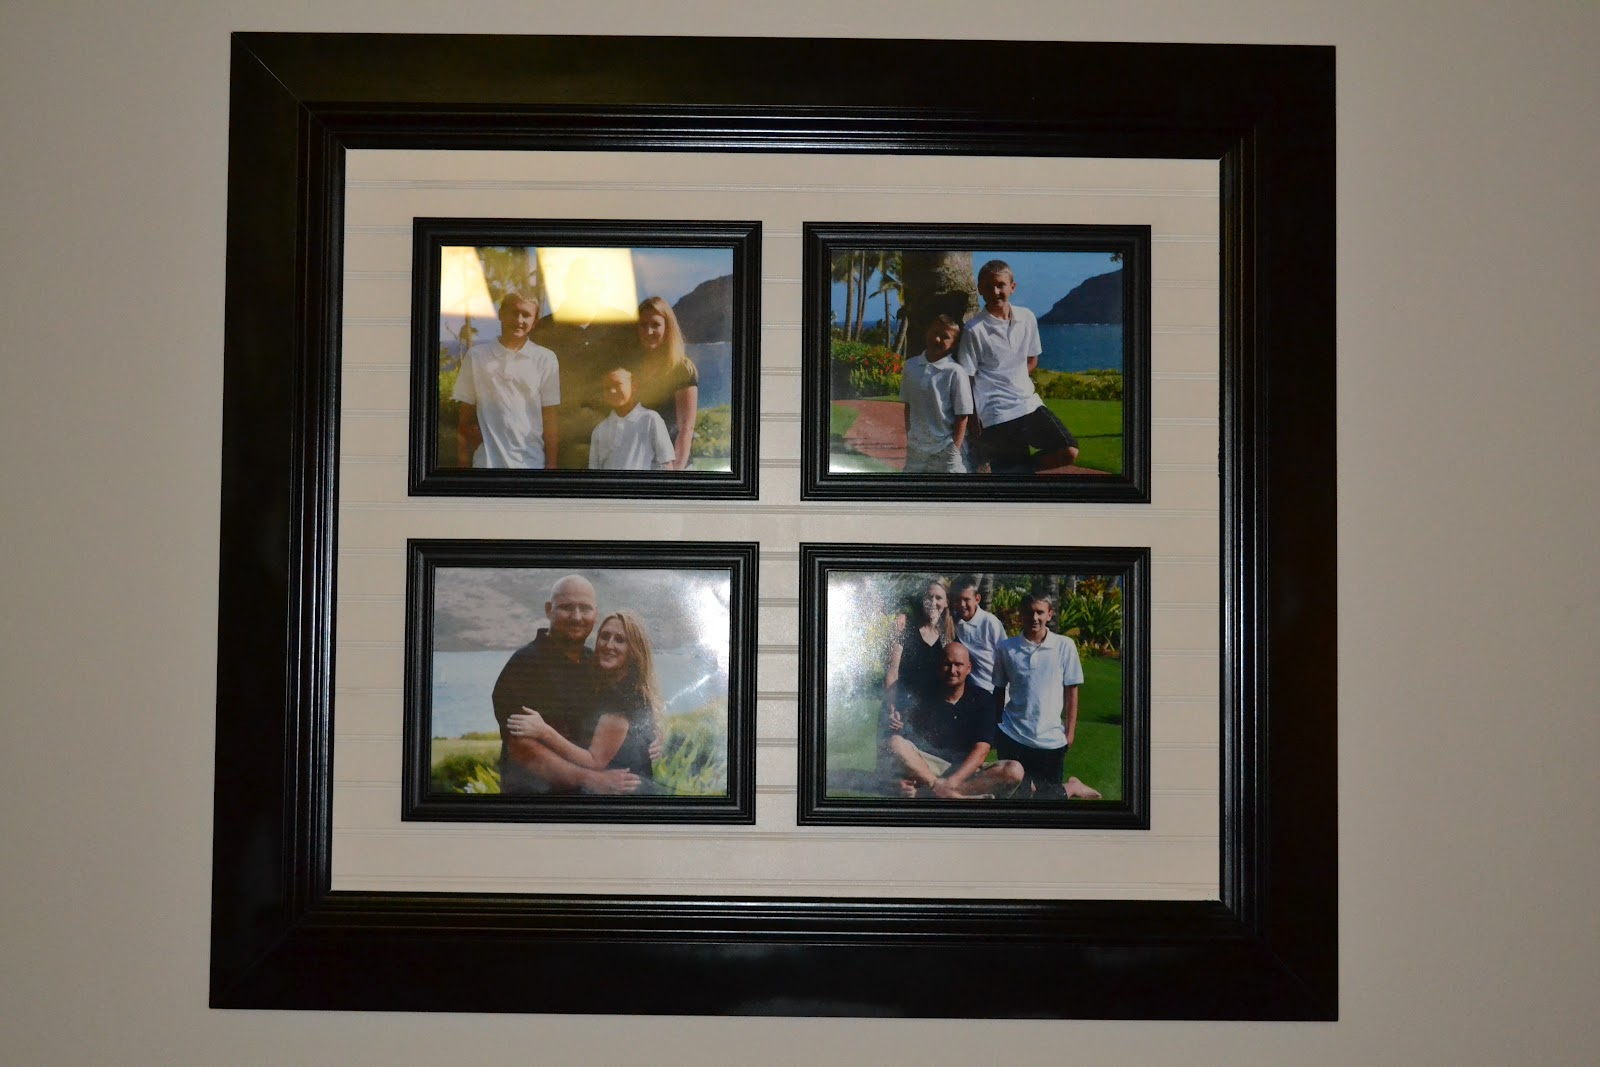 next i got 4 10x14 frames and put the four pictures i wanted in them then i attached the four frames with some removable velcro strips that way i can